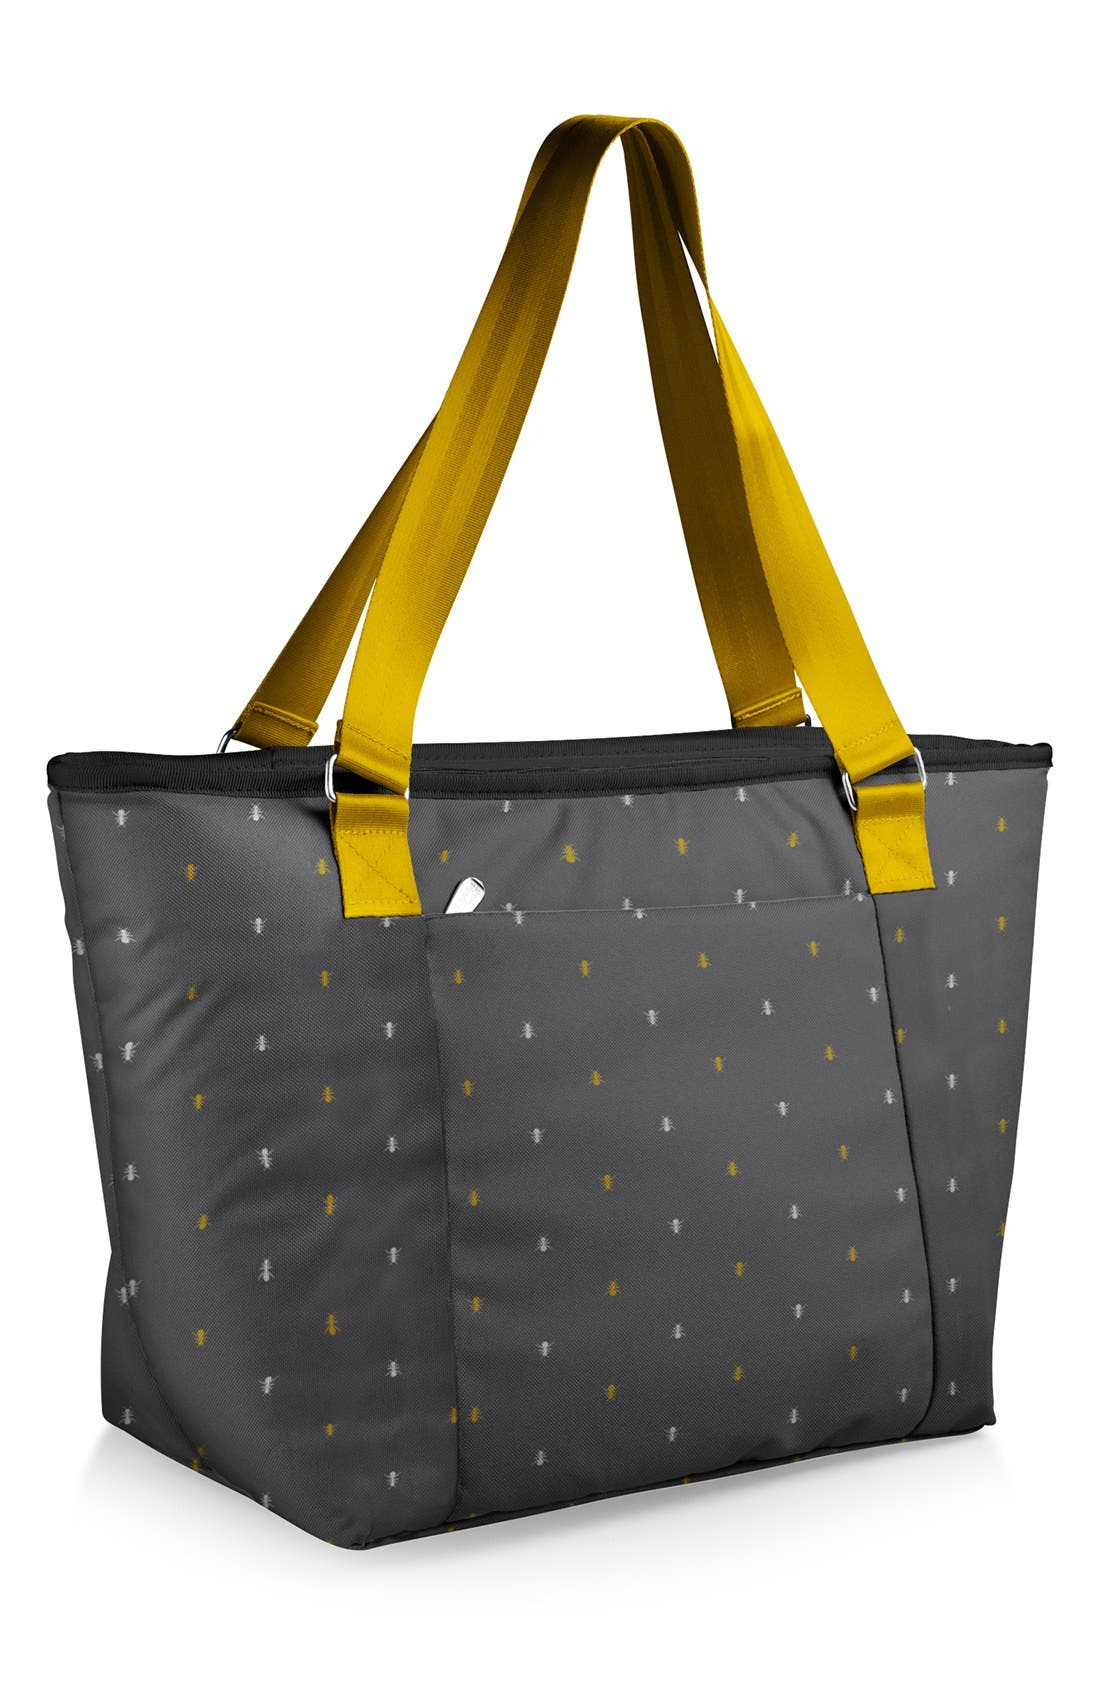 Main Image - Picnic Time 'Hermosa' Cooler Tote